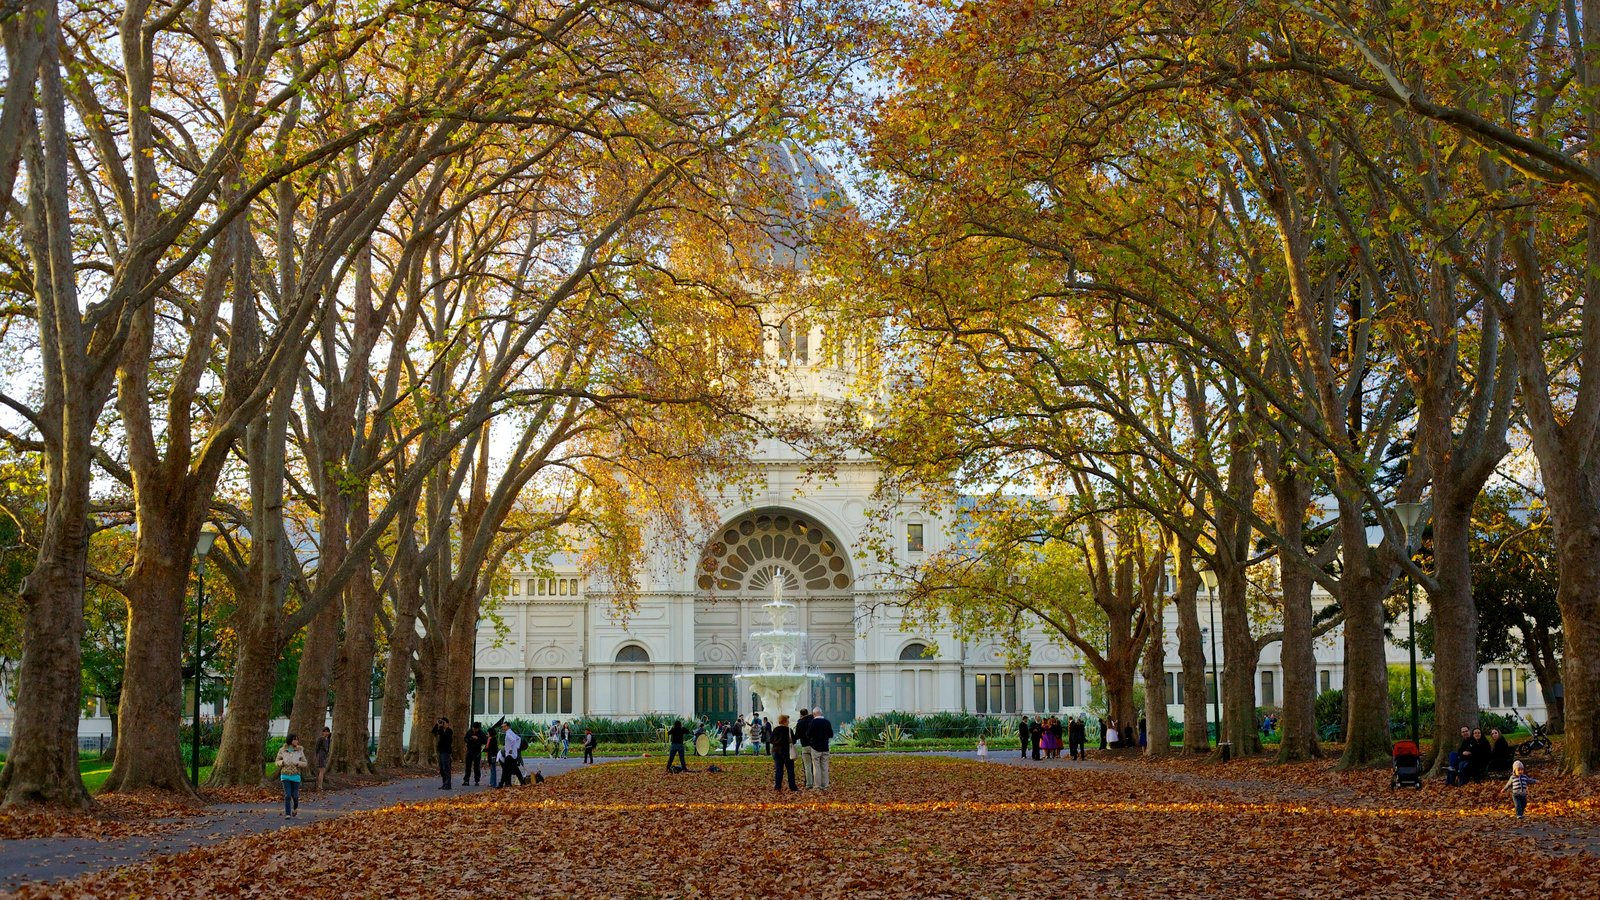 Carlton Gardens featuring autumn leaves and a square or plaza